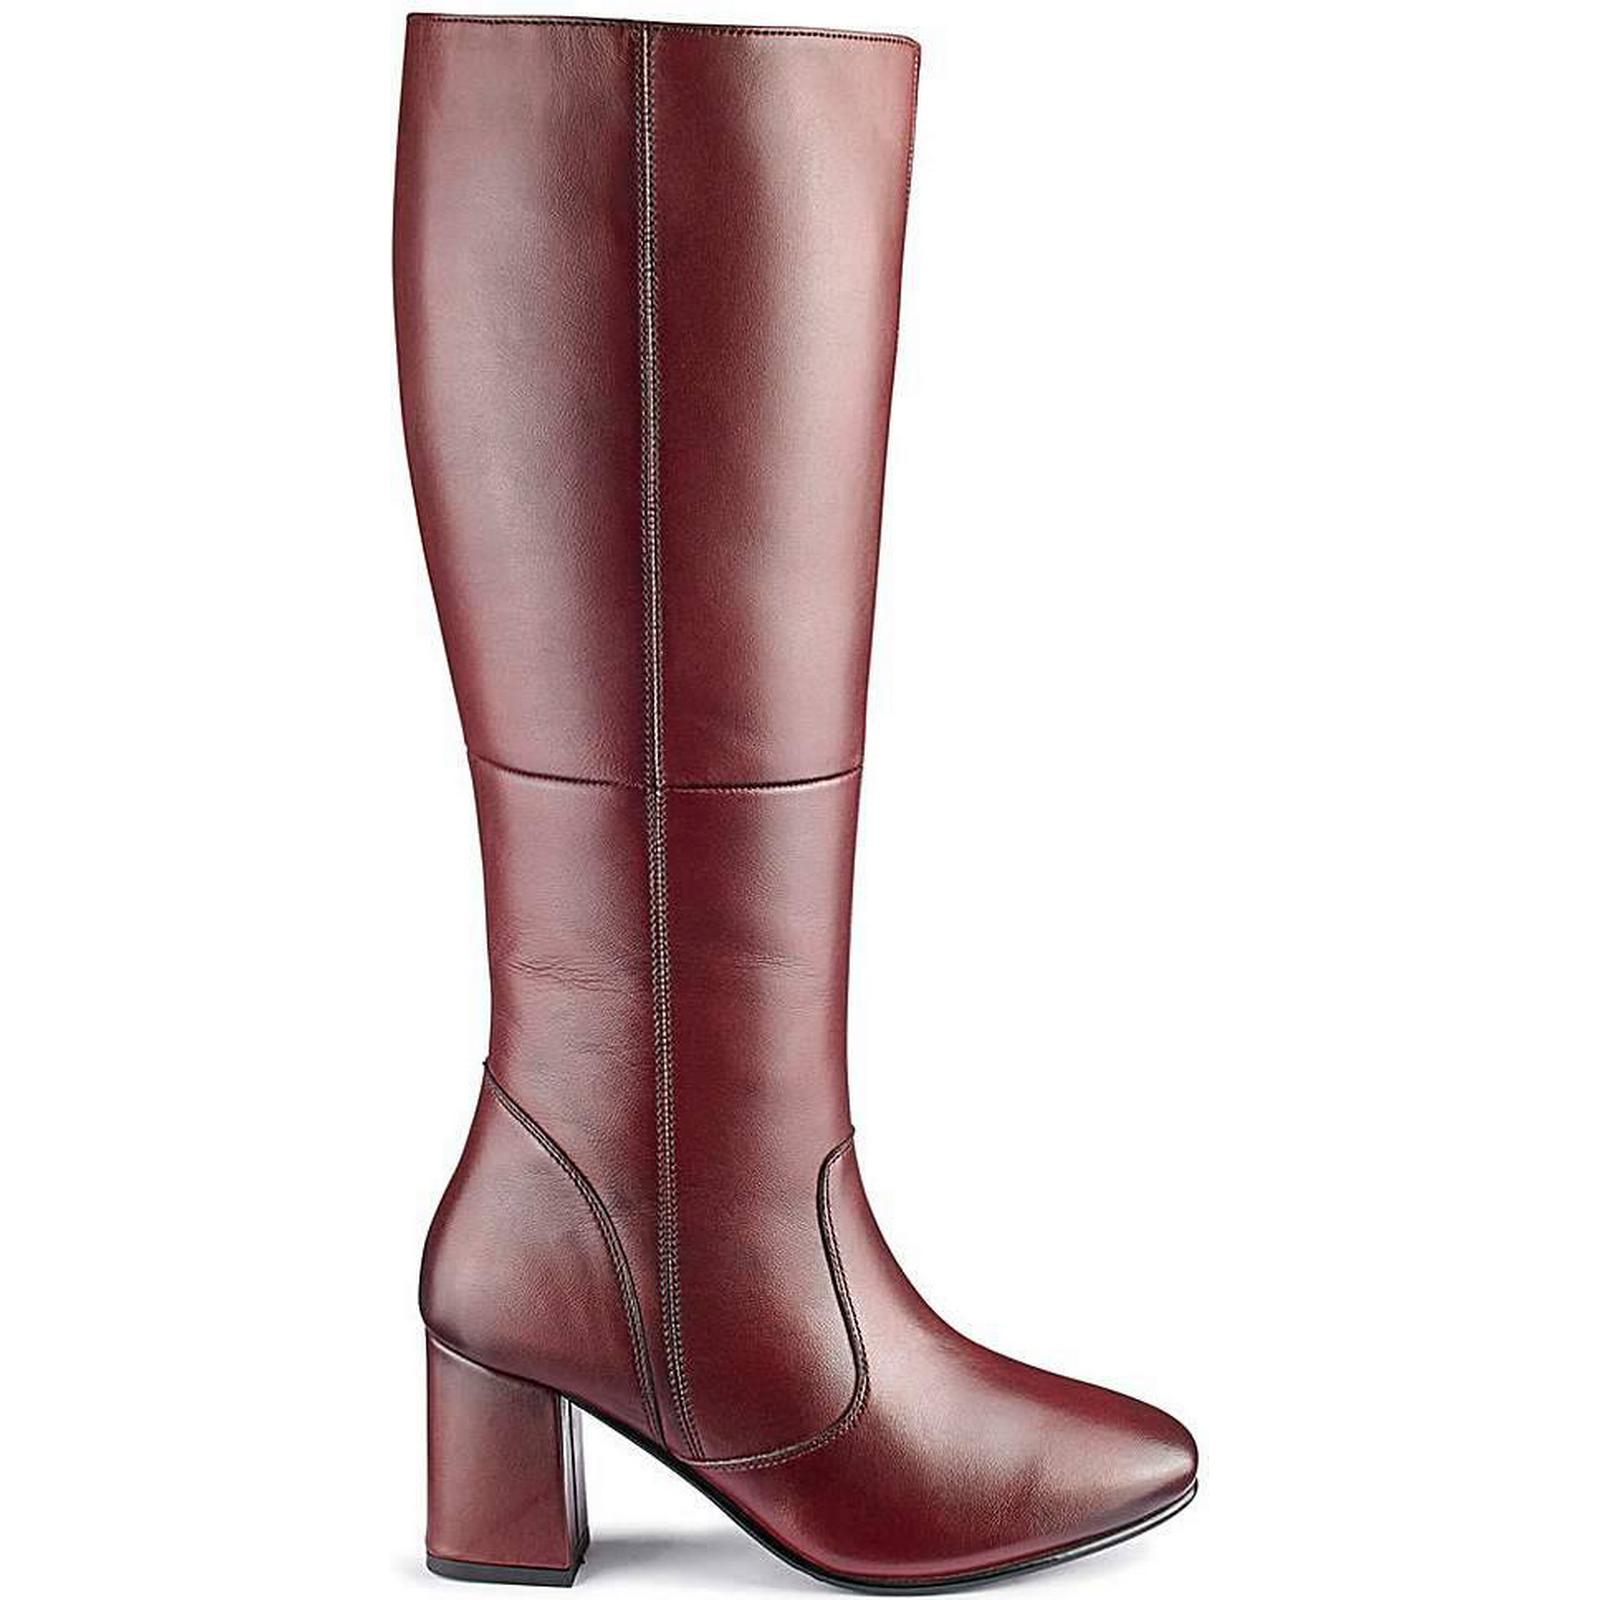 Leather Calf Boots EEE Fit Standard Calf Leather bc766c